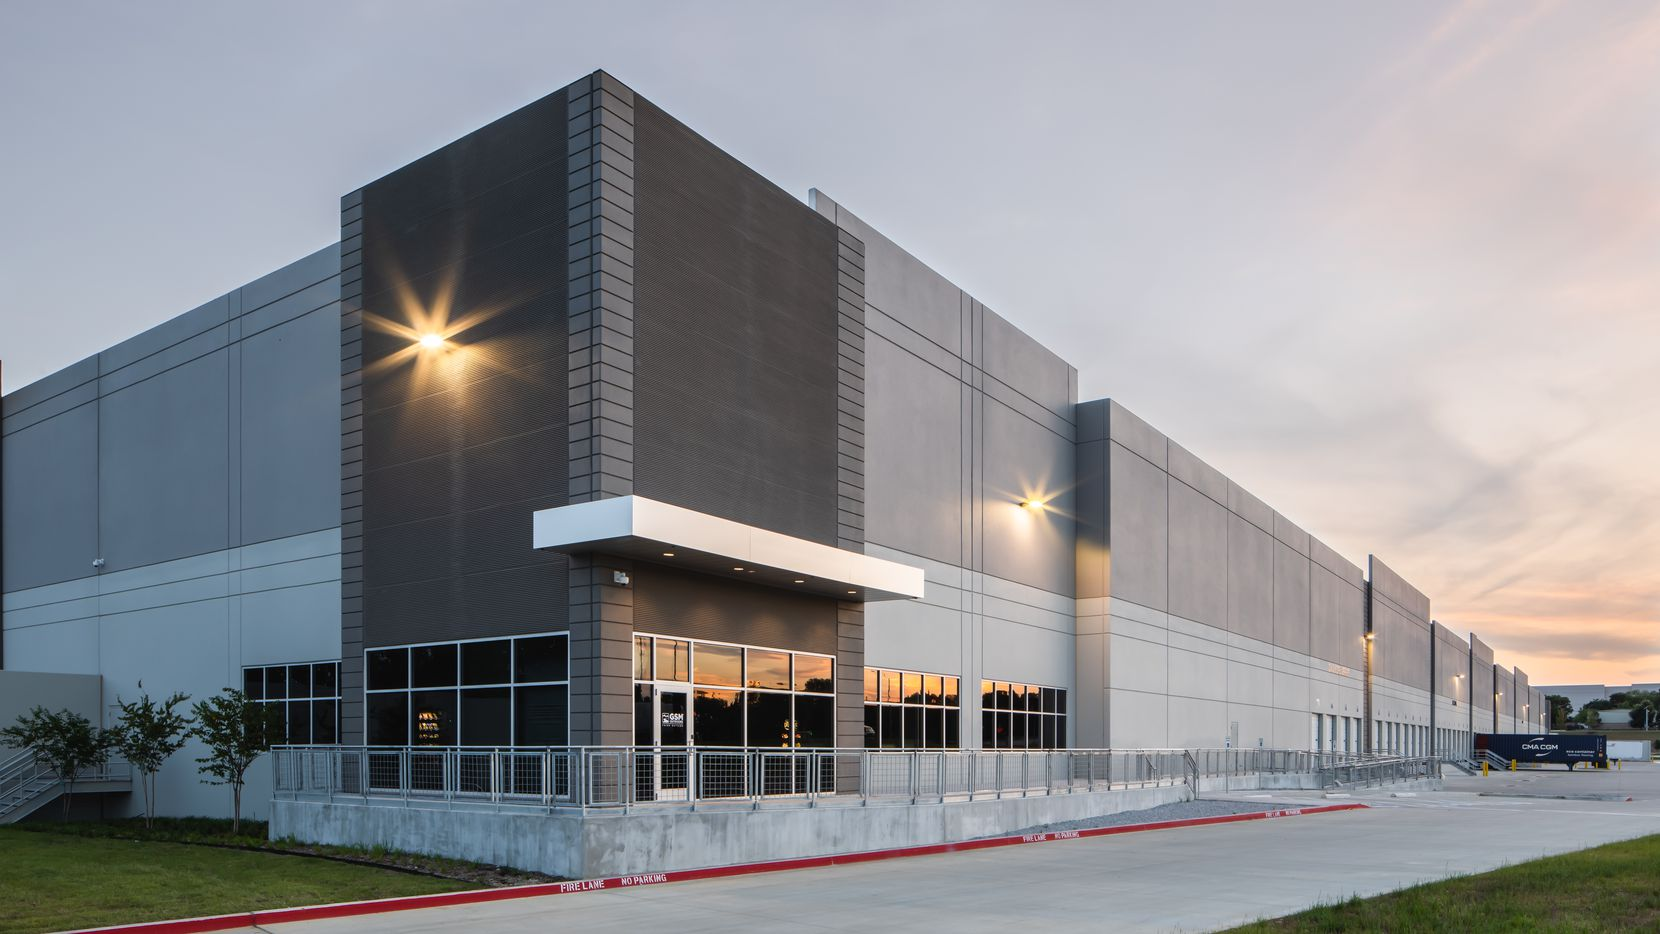 Good Sportsman Marketing leased a new building in the Parc SouthWest industrial park  in Irving